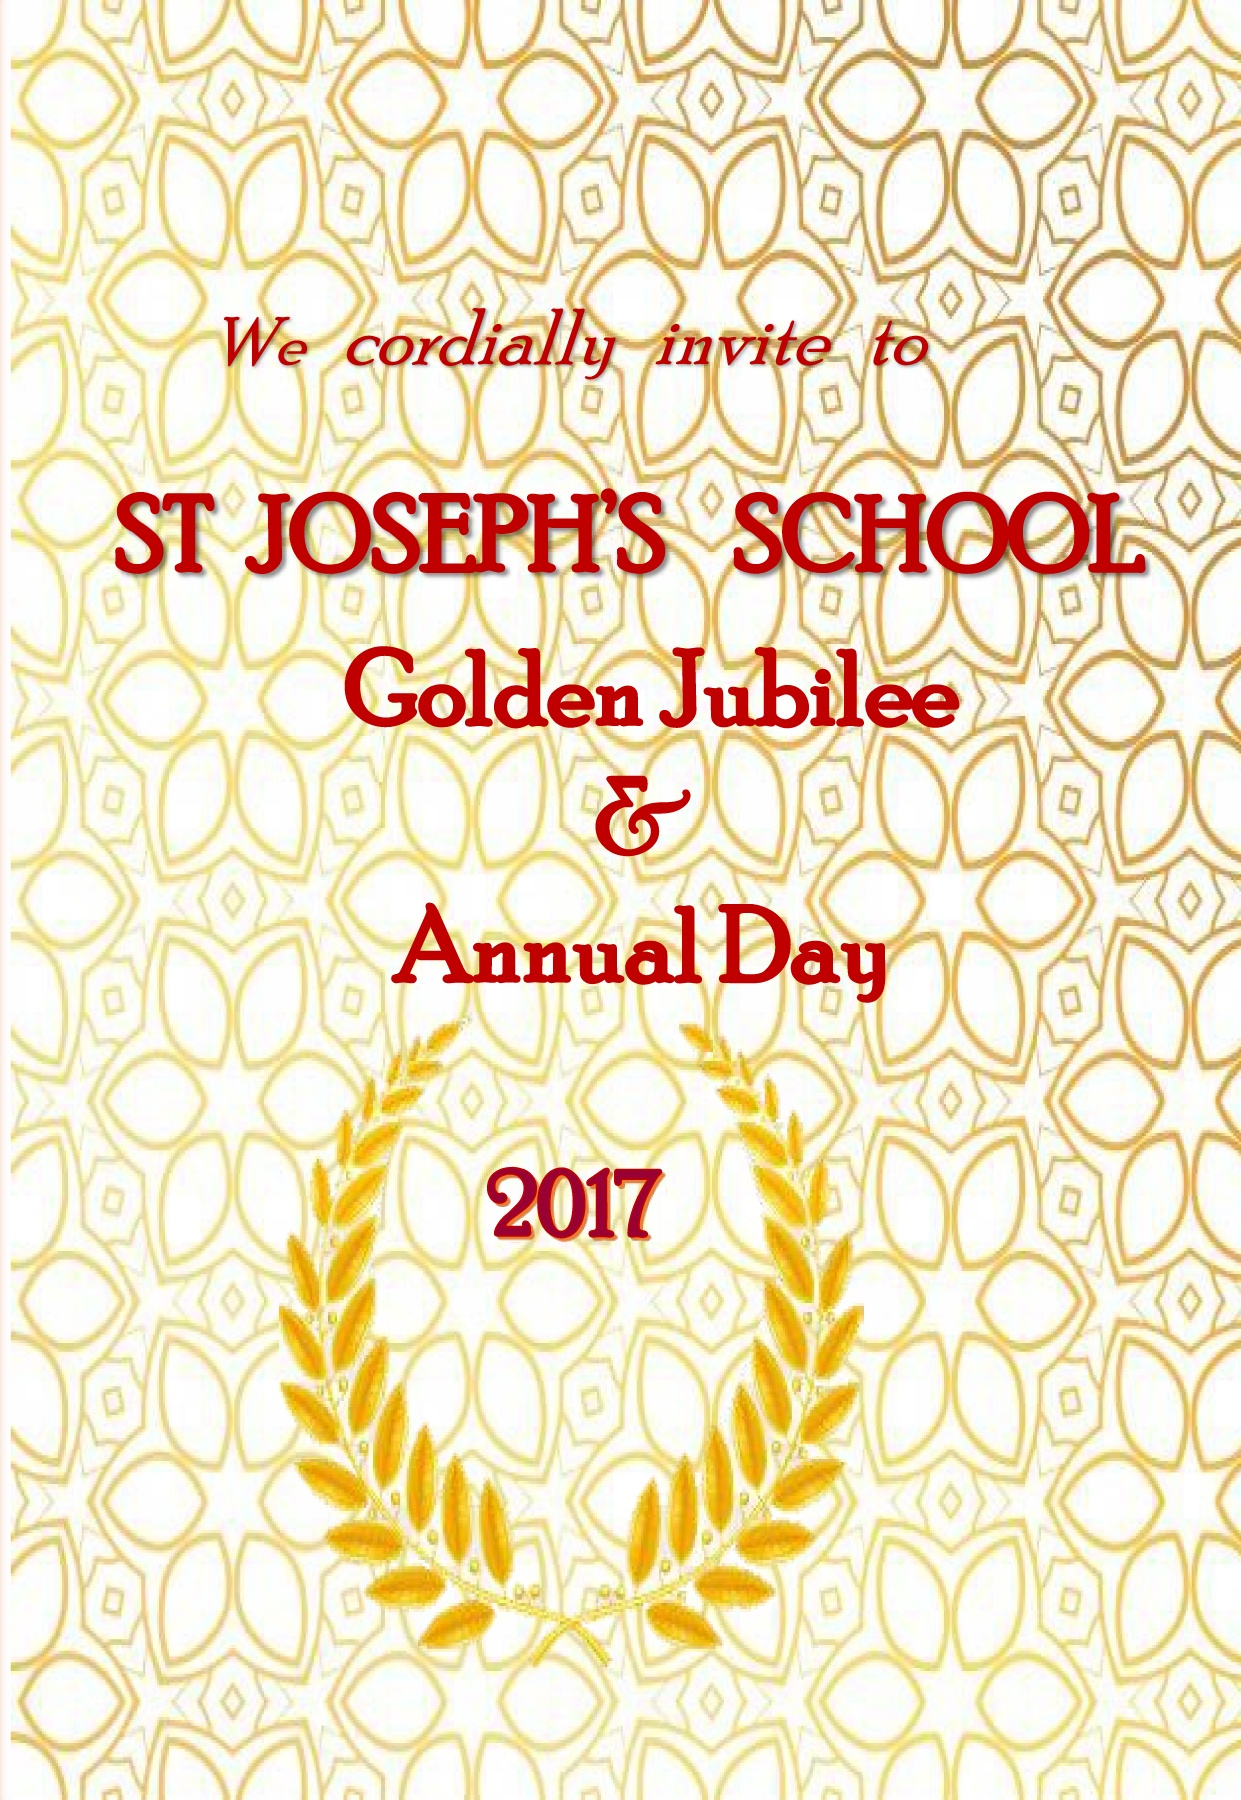 Invitationcard 2017 Pages 1 4 Text Version Anyflip